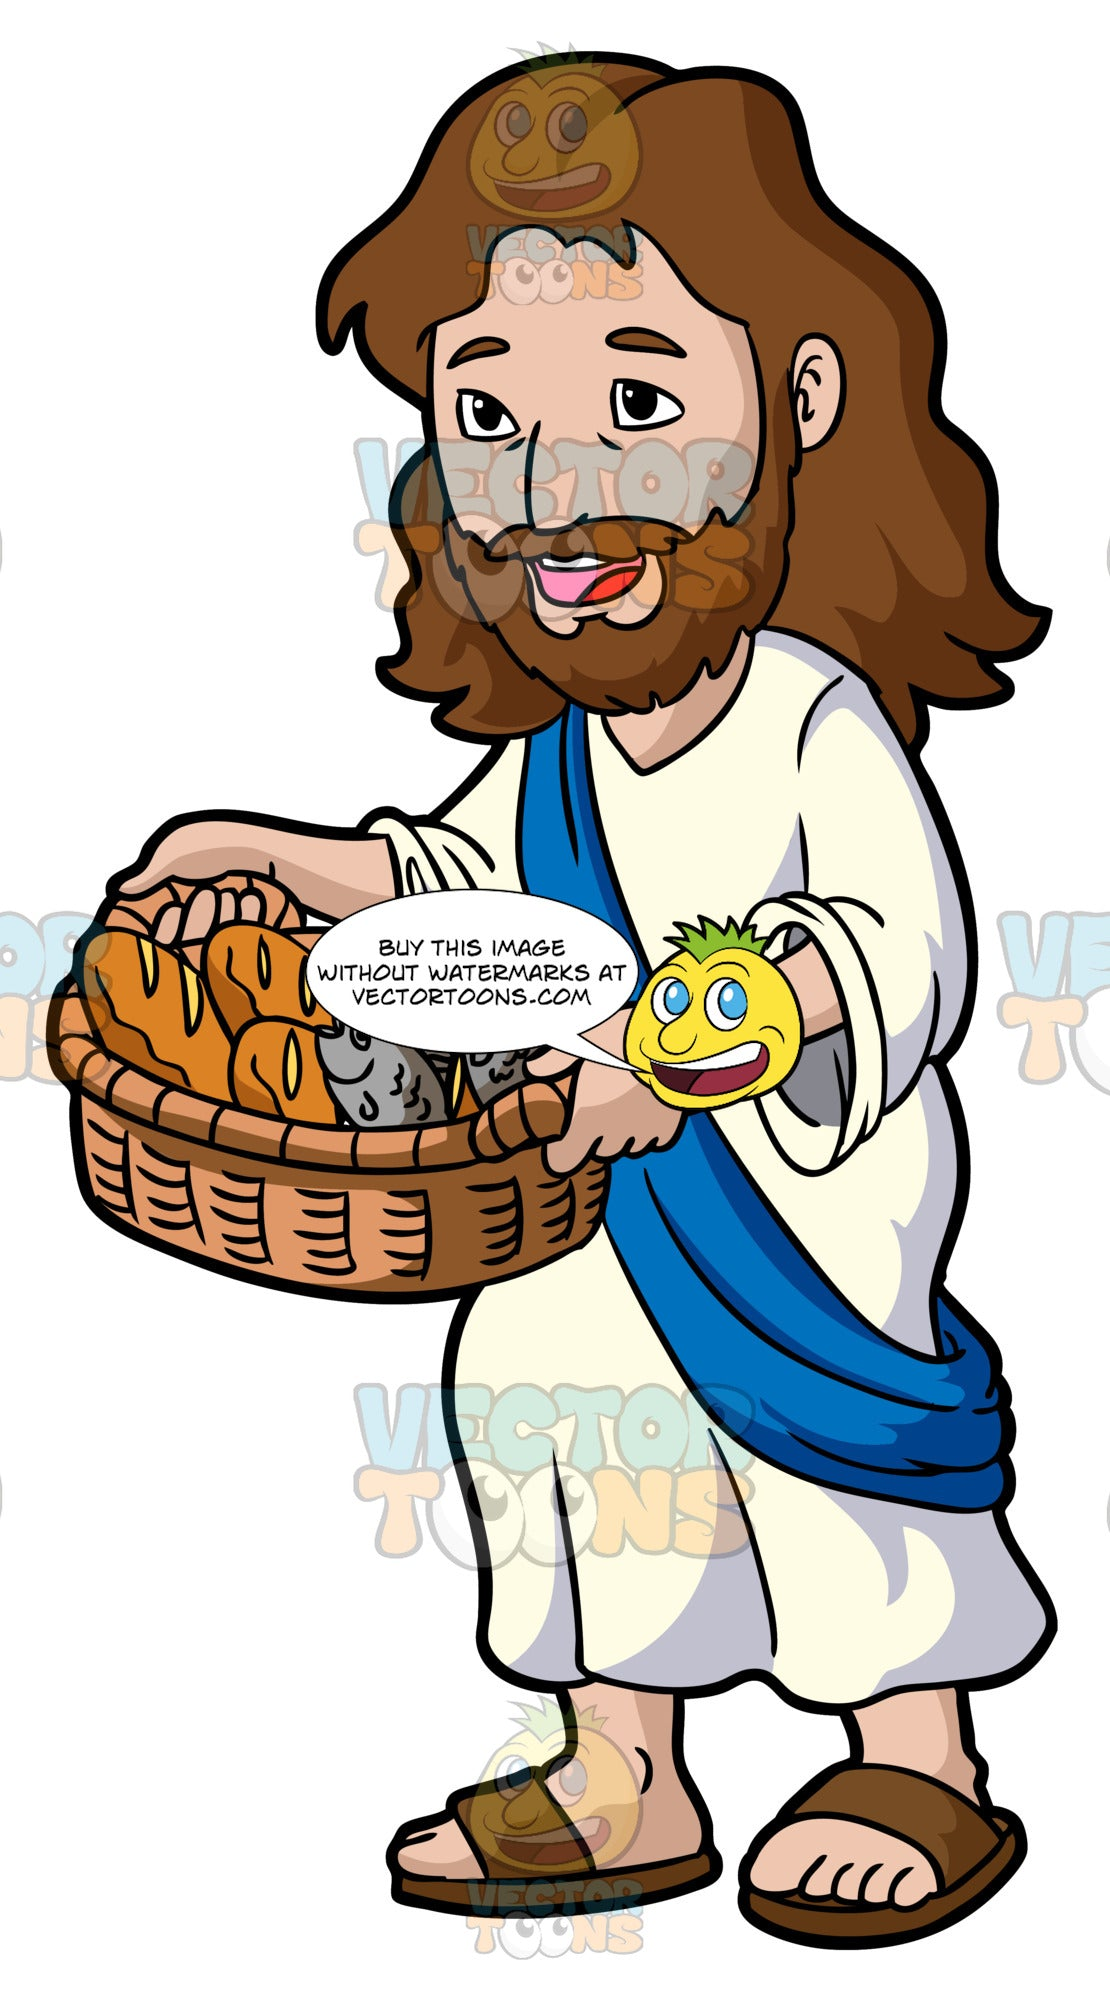 Jesus Christ Carrying A Basket Of Bread And Fish